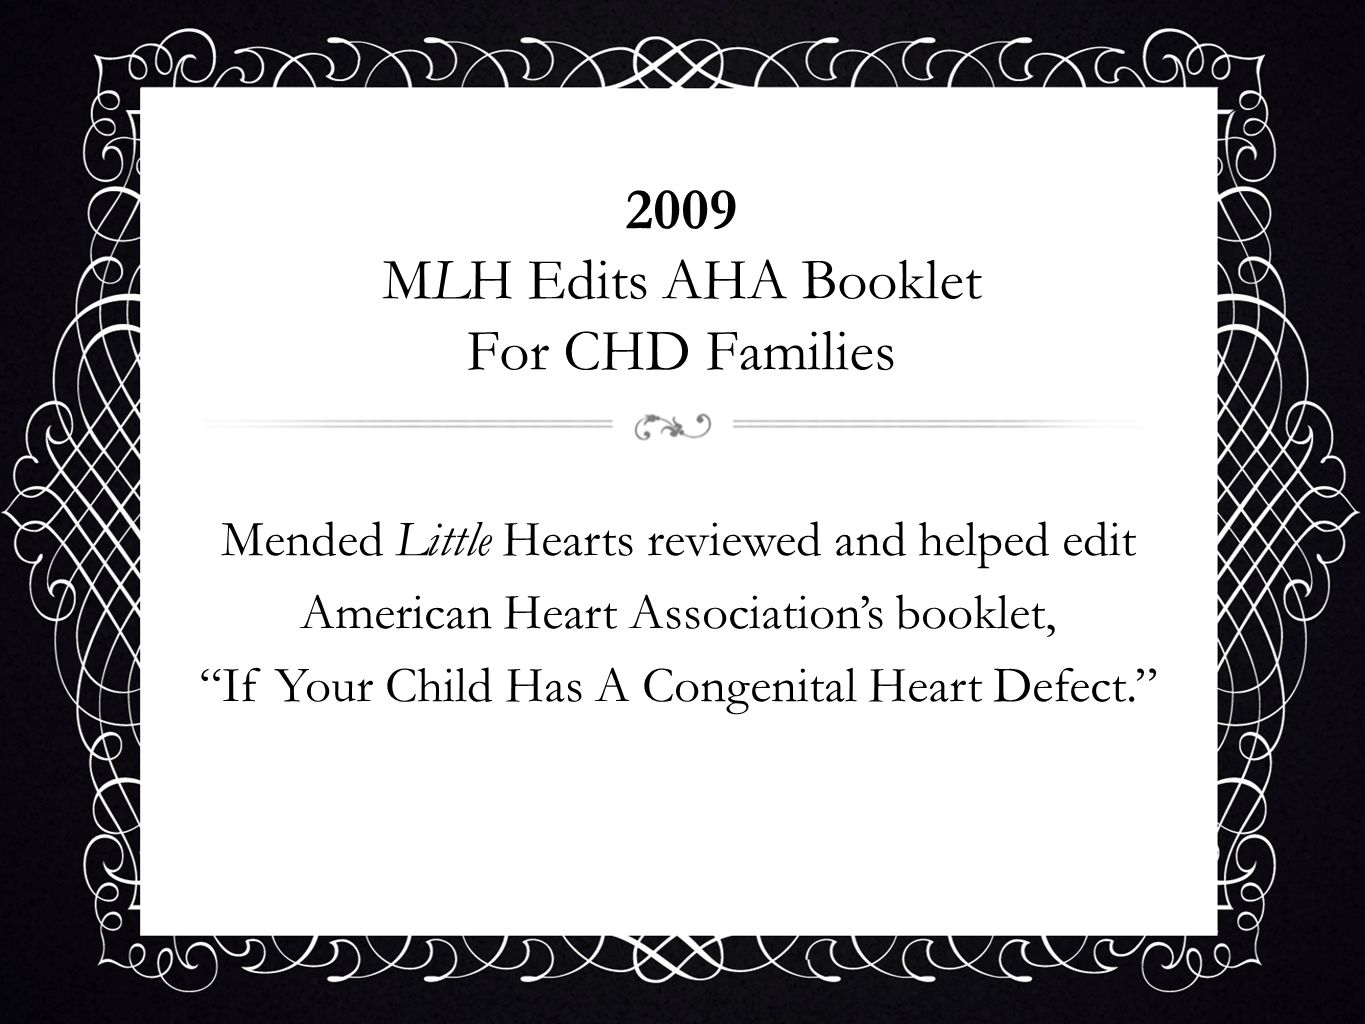 2009 MLH Edits AHA Booklet For CHD Families